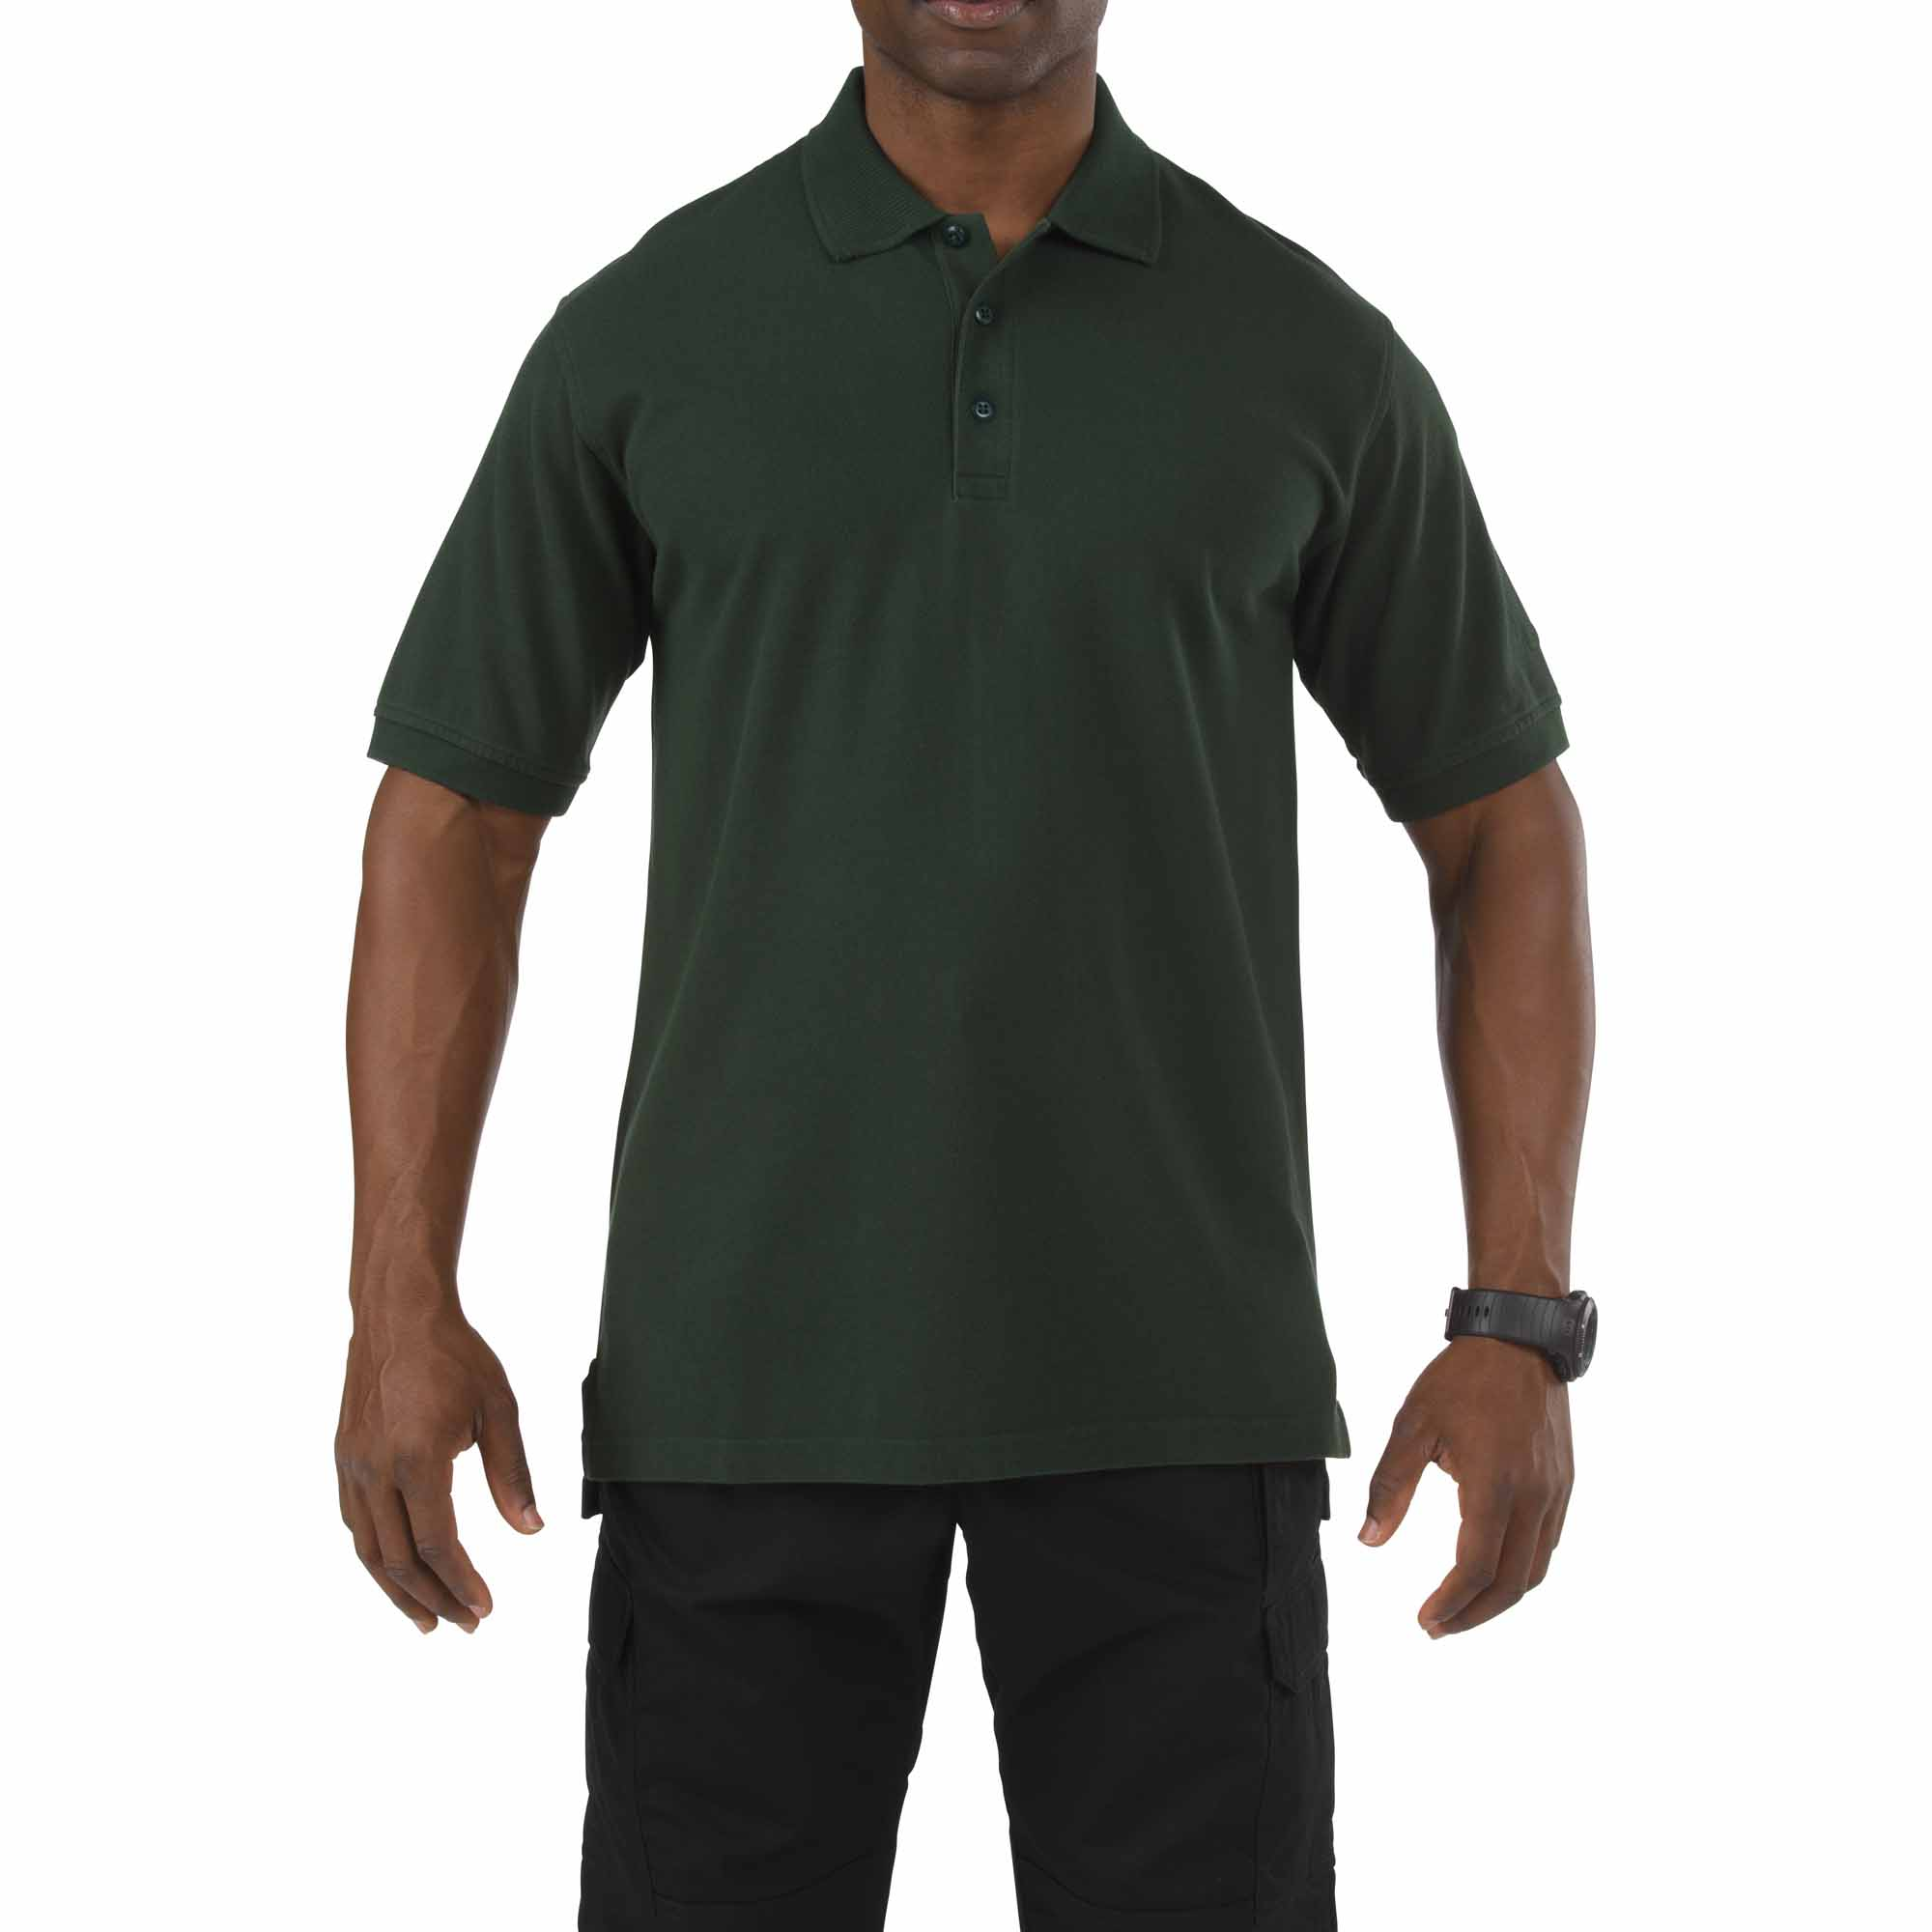 f84710504fcd4 5.11 Tactical Polyester Polo Shirt - Moisture Wicking Performance ...